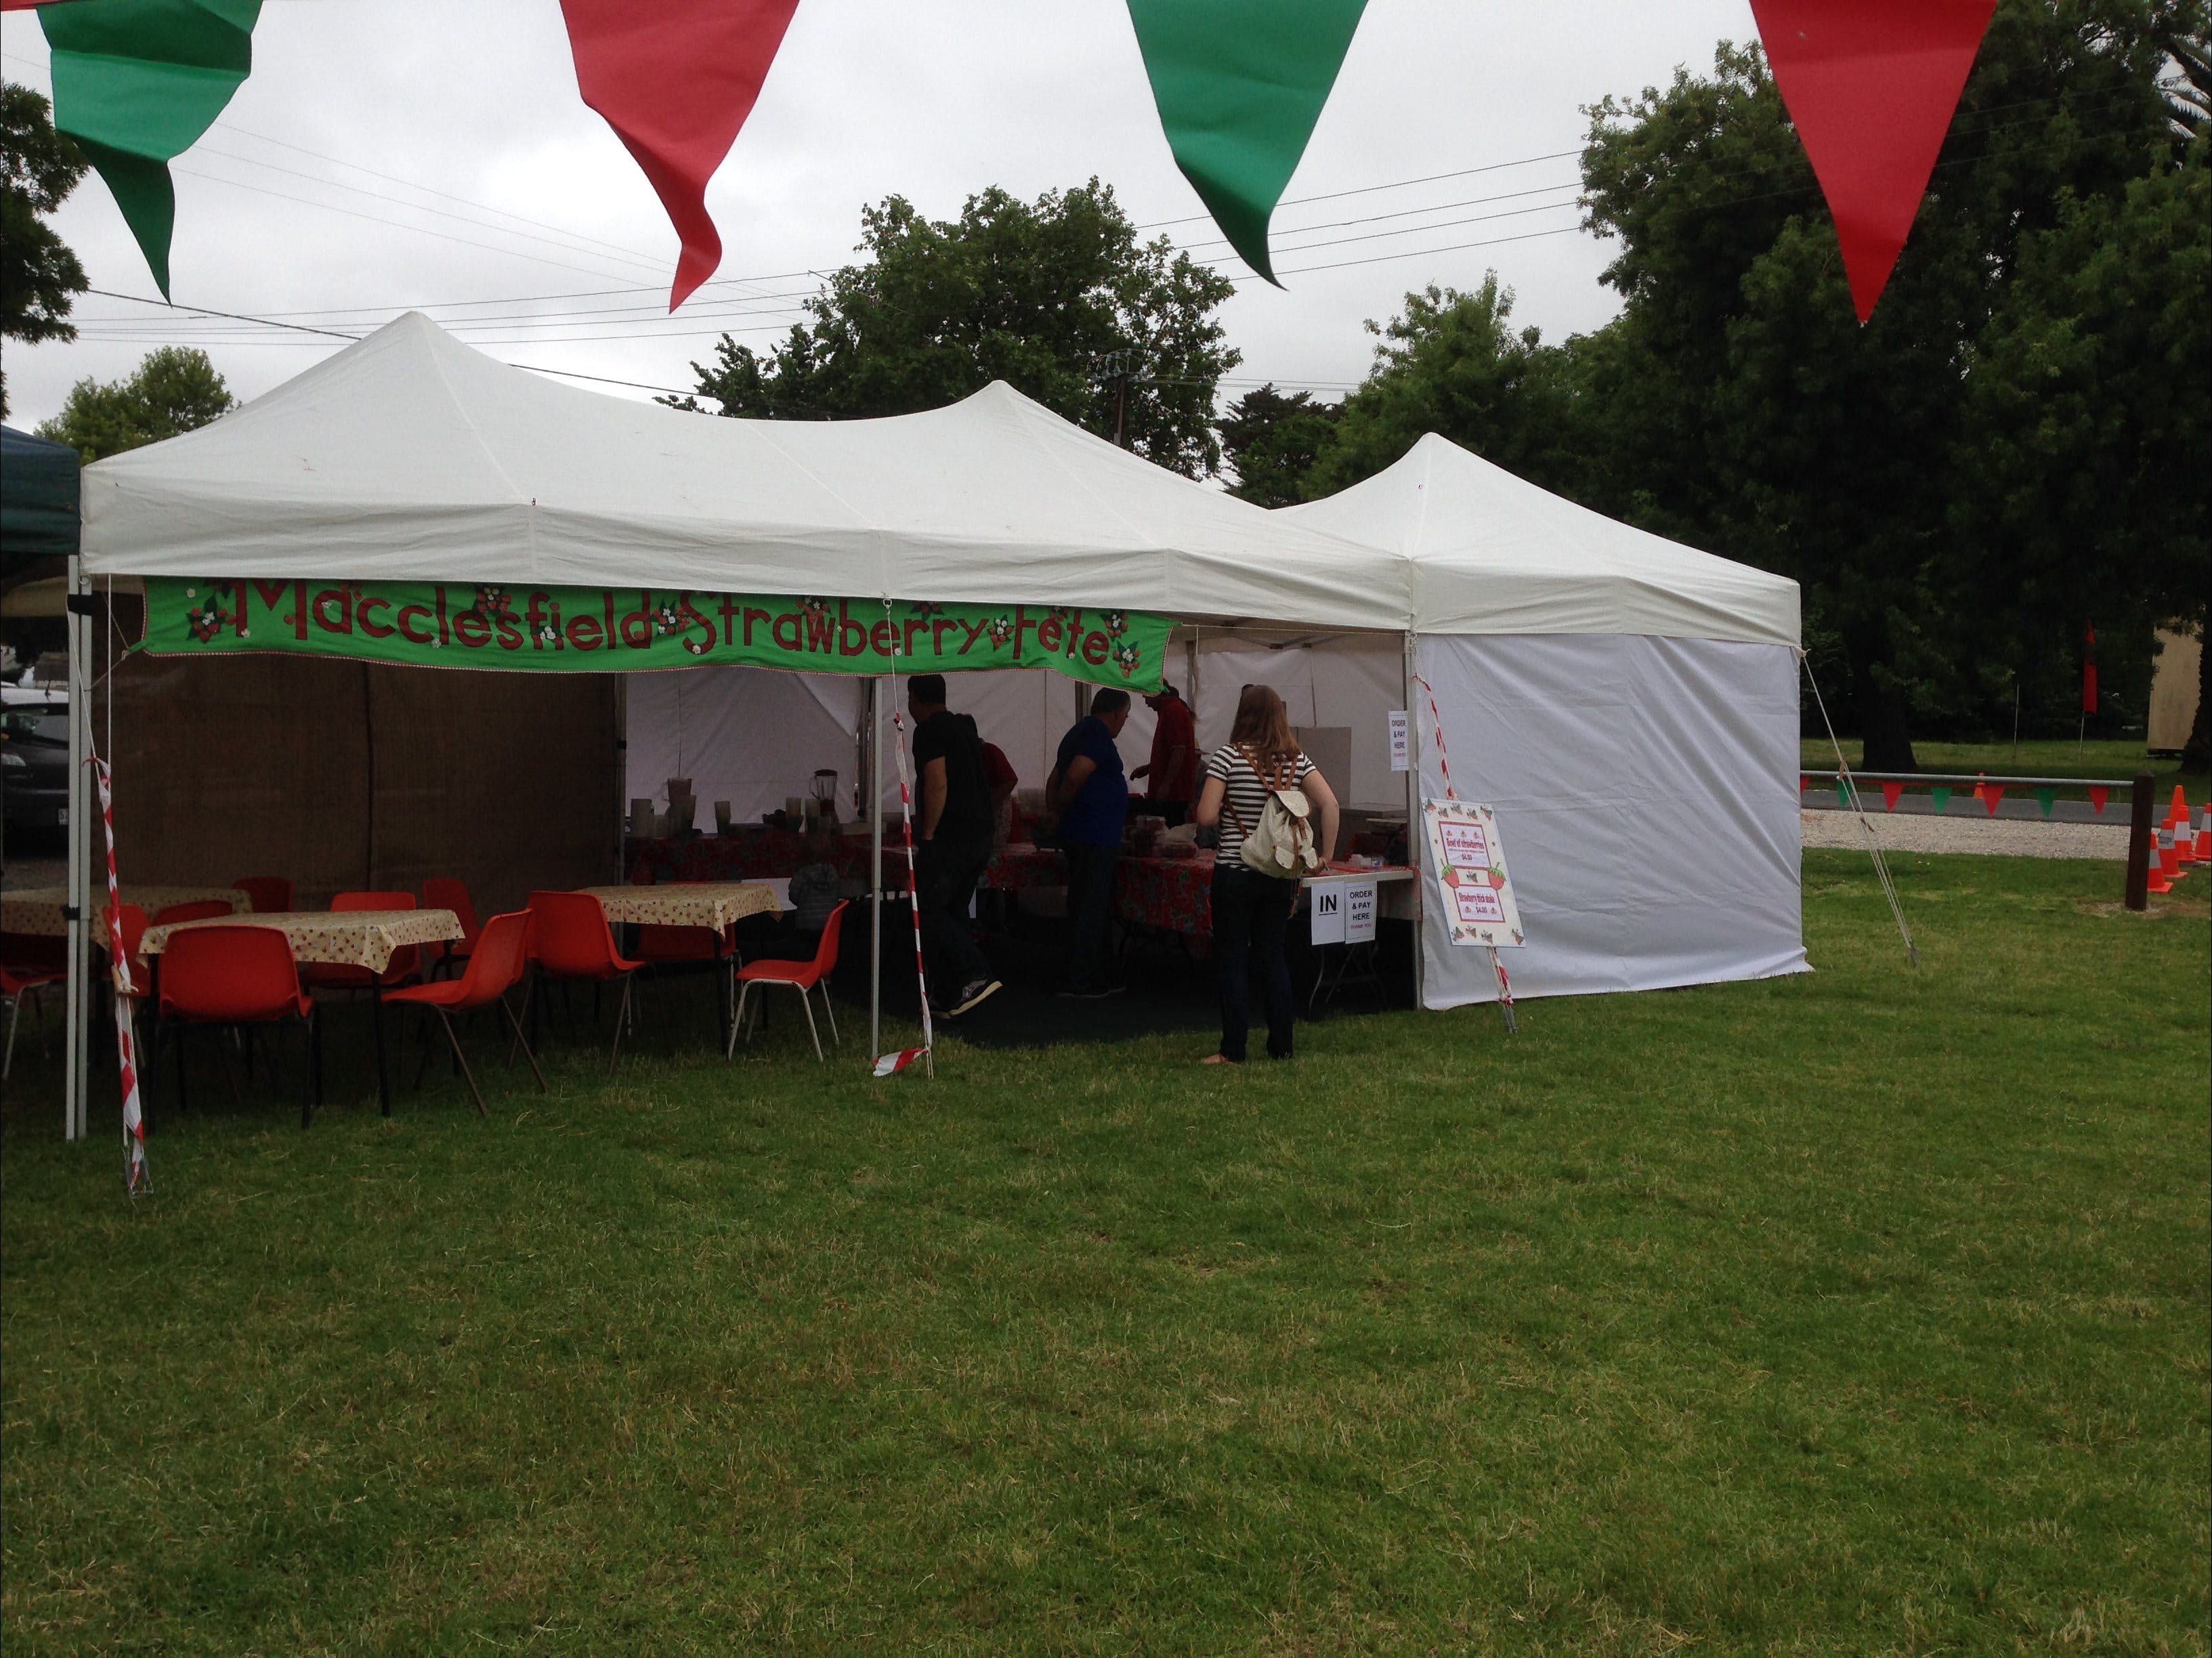 Macclesfield Strawberry Fete - Carnarvon Accommodation